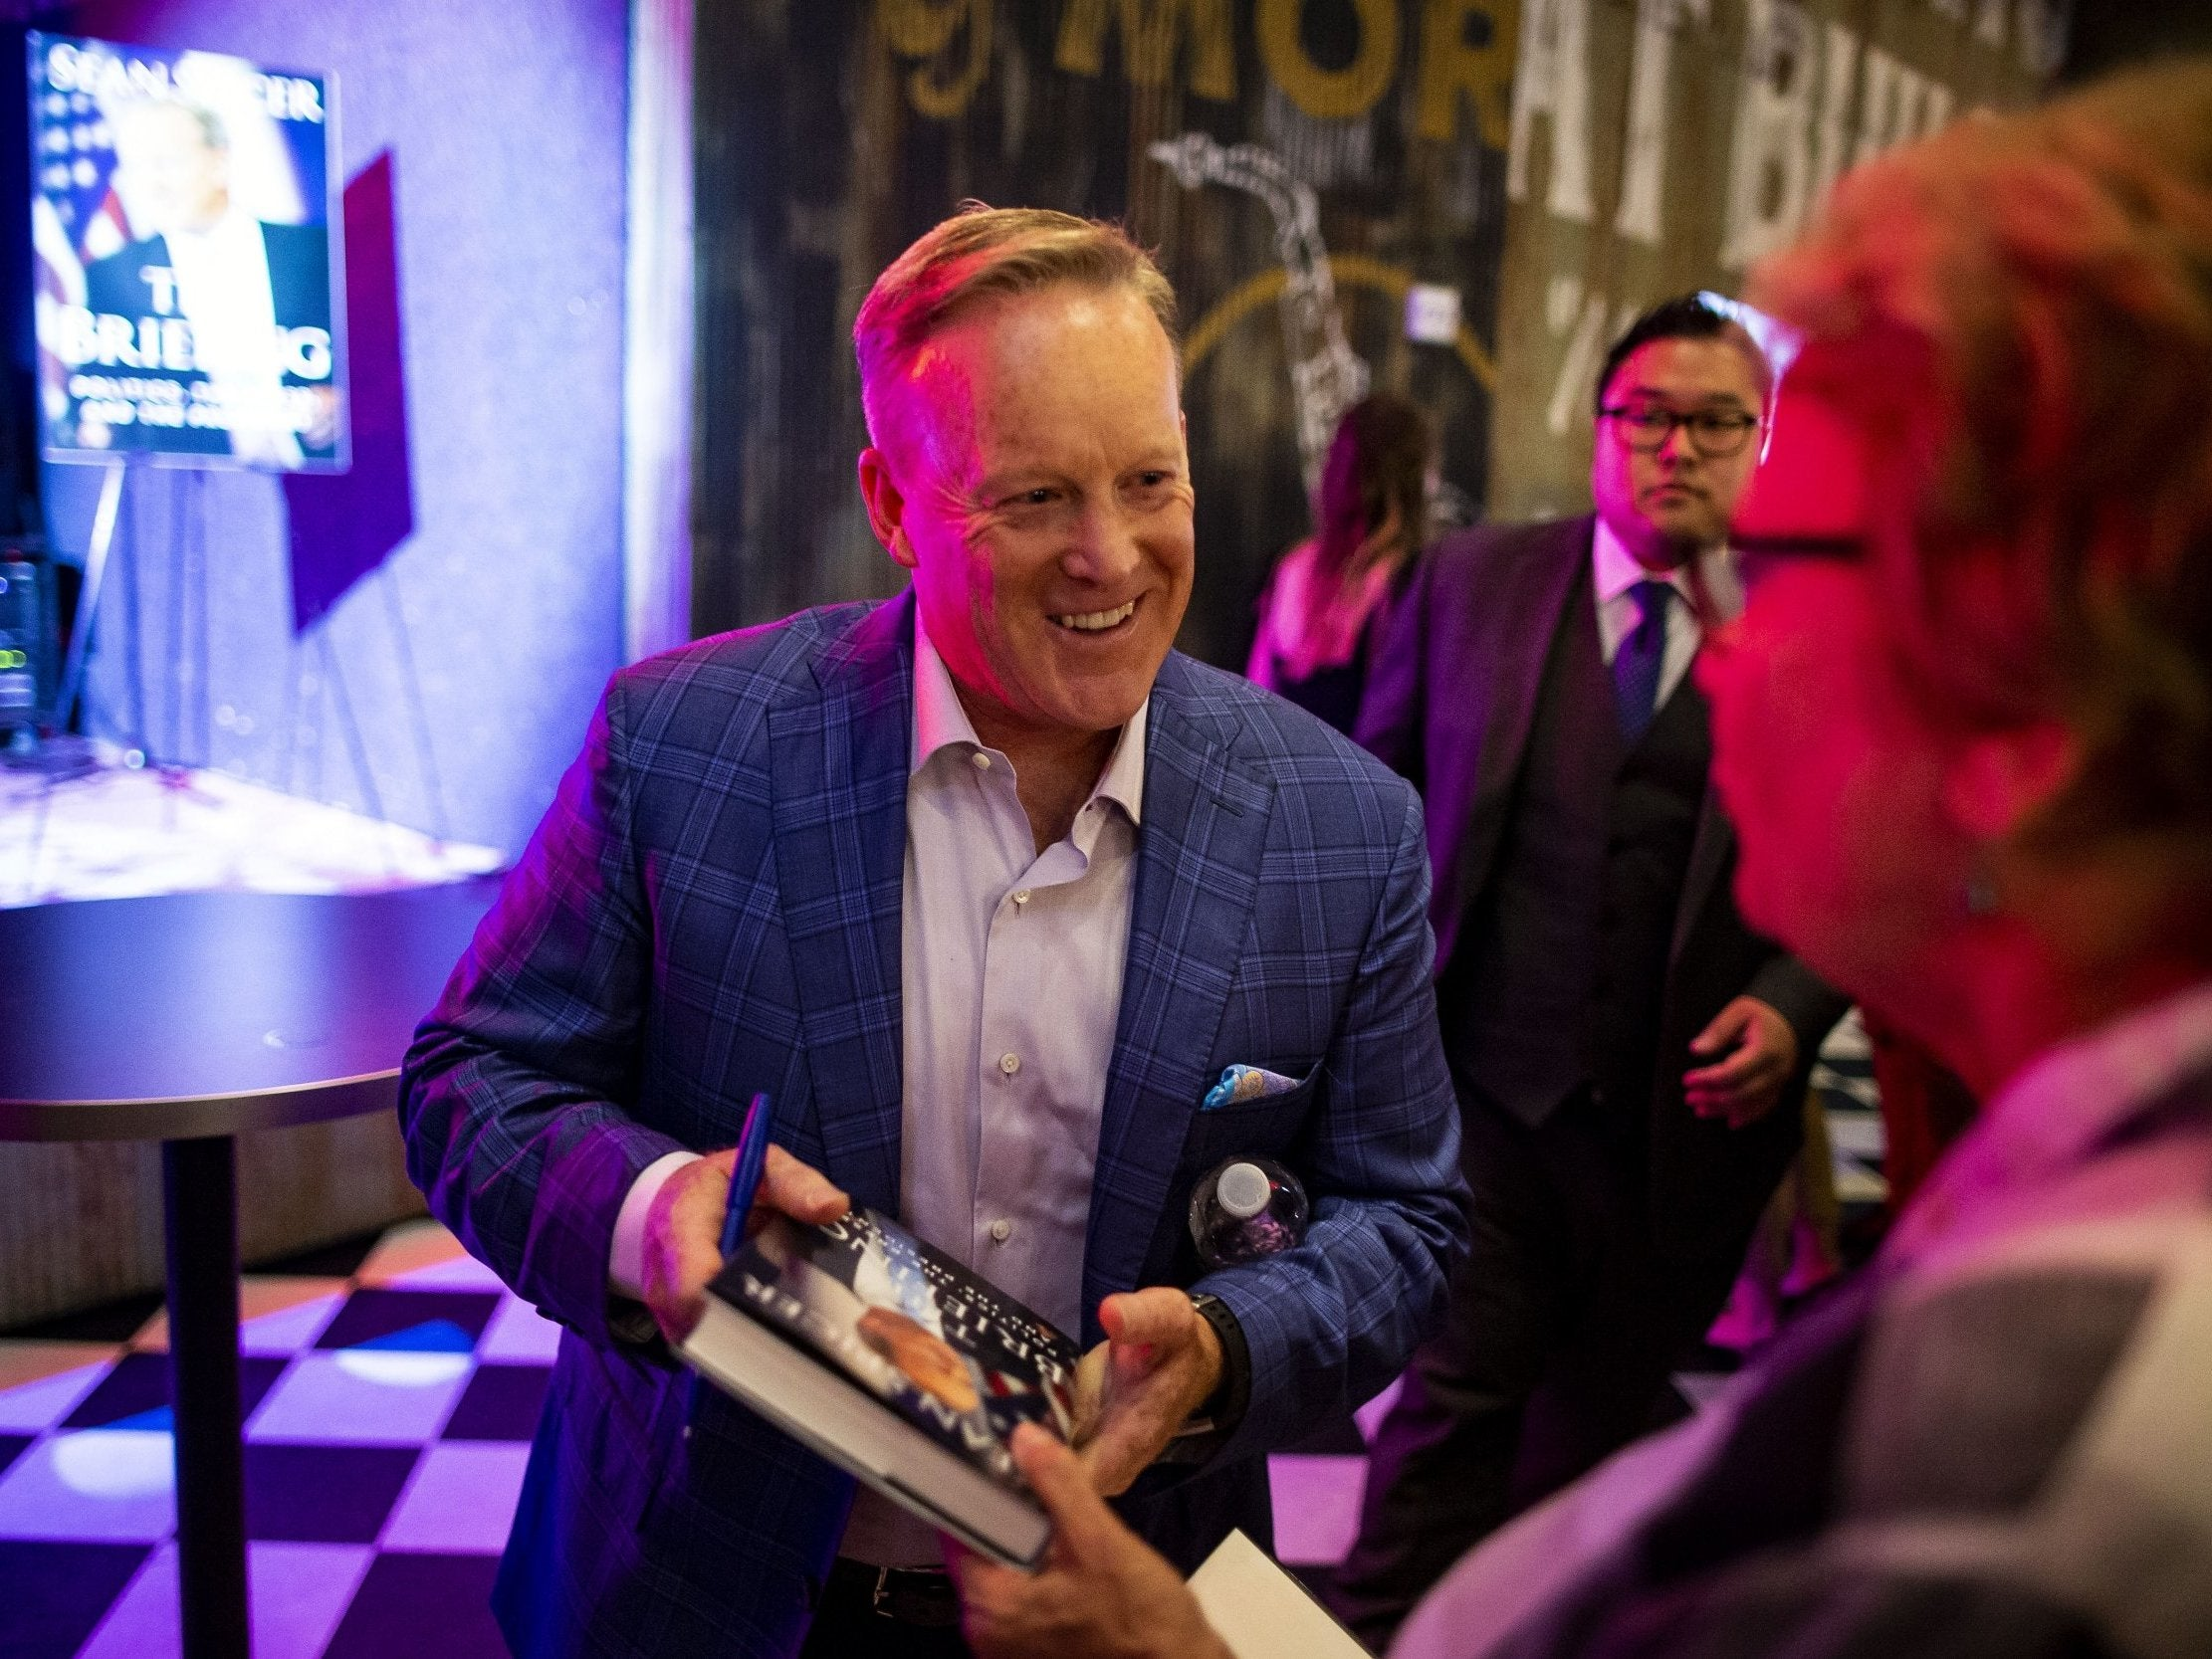 Sean Spicer accused by black man of calling him the N-word and trying to fight him while at school together